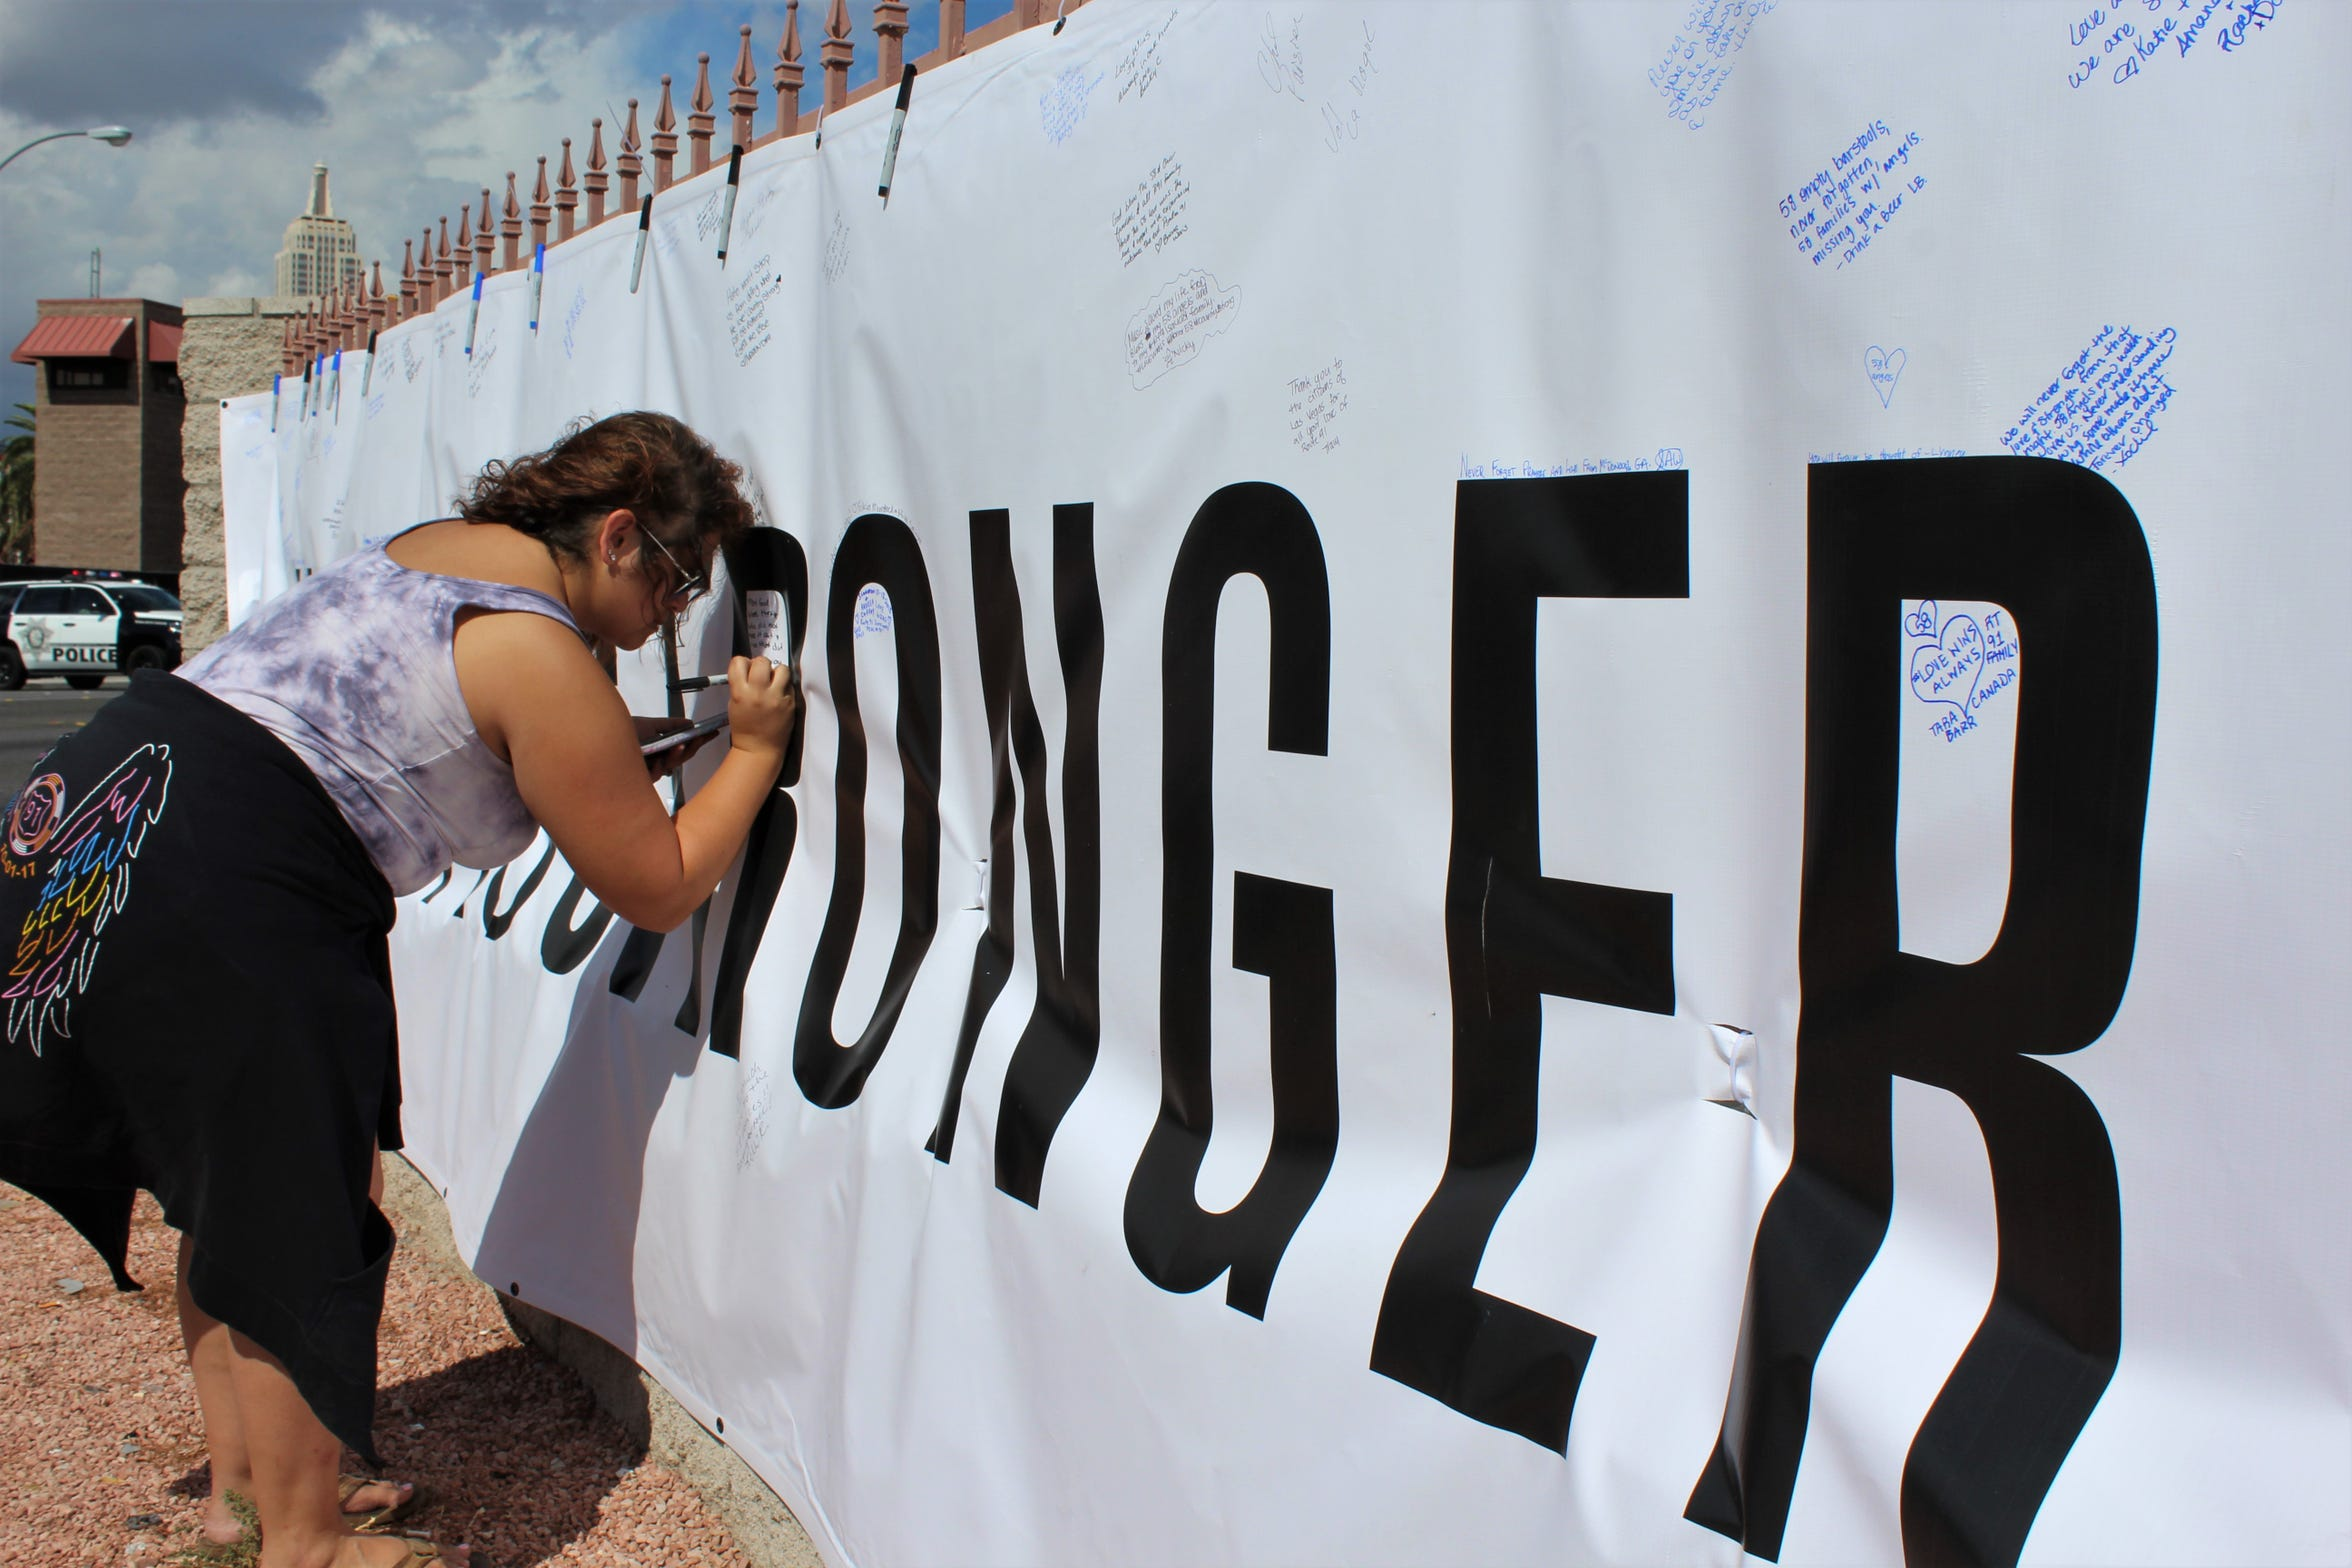 A woman pens a message on a banner across the street from the site of a 2017 shooting that killed 58 in Las Vegas.